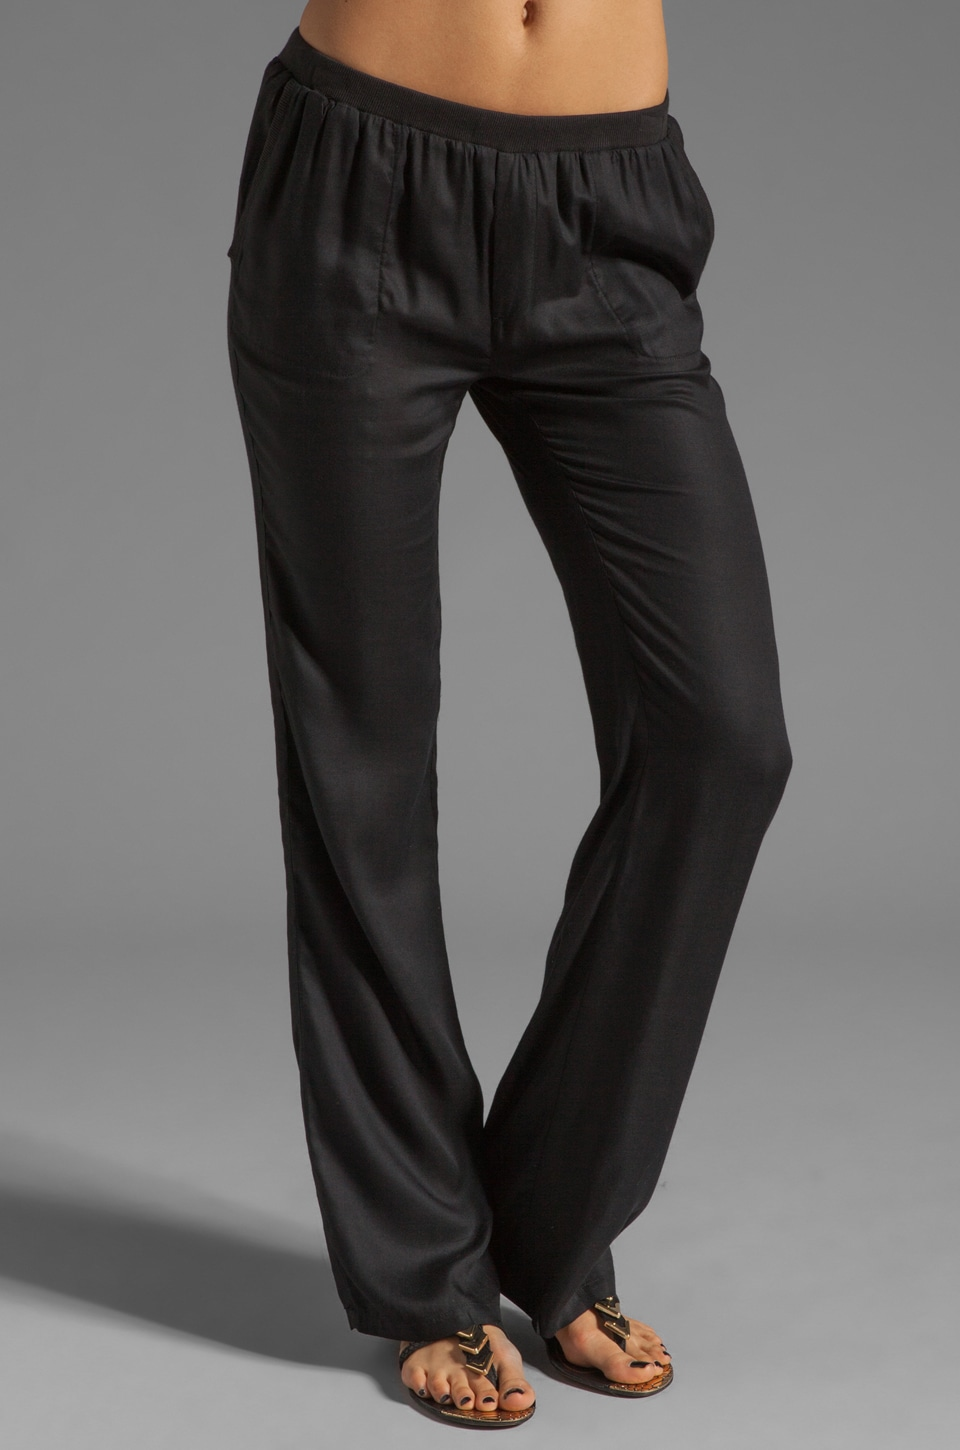 Soft Joie Thatcher Wide Leg Pant in Caviar